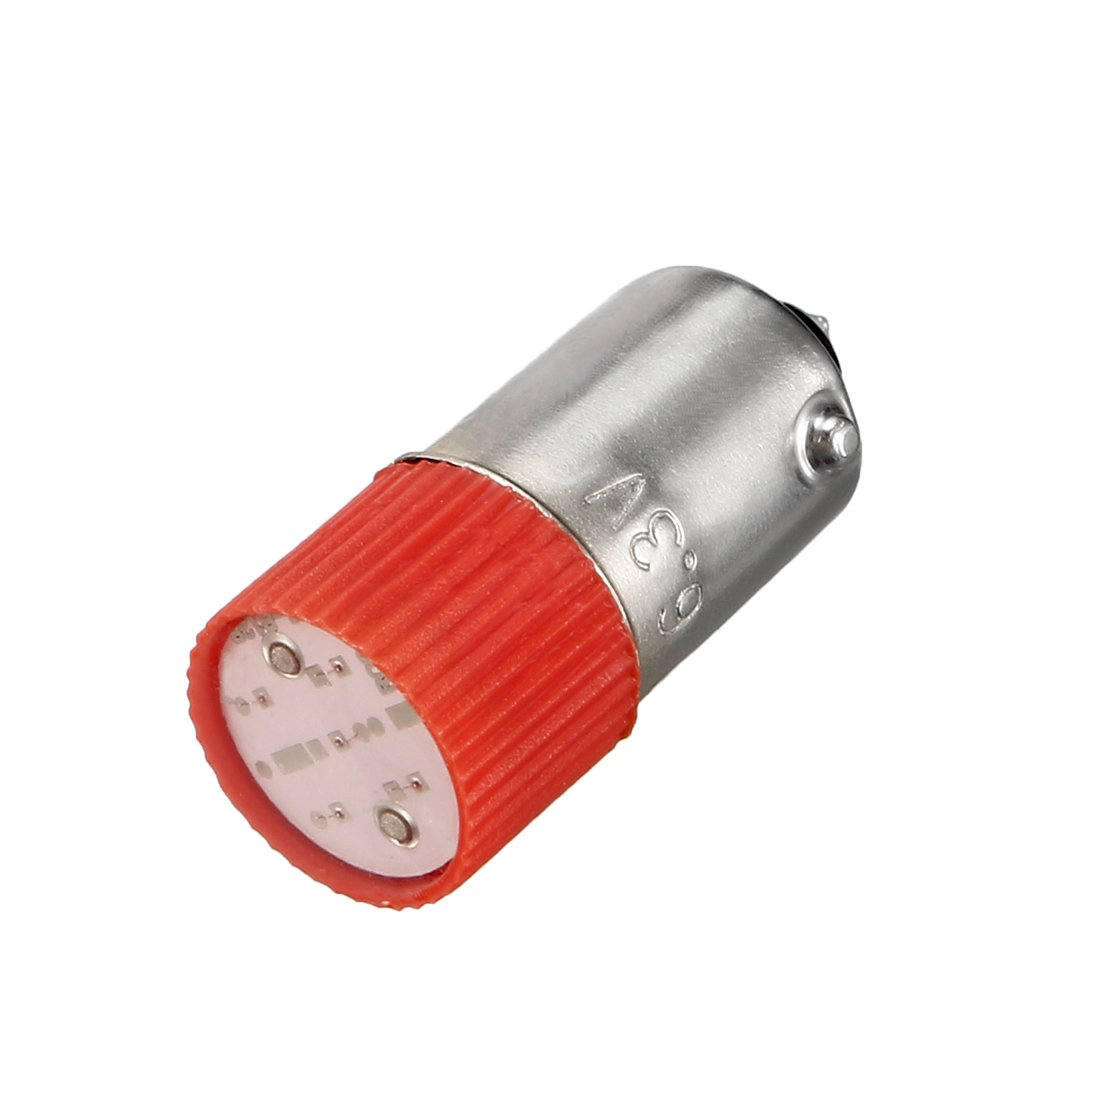 Red a12072100ux0221 1 NO 1 NC Uxcell LED Momentary Stainless Push Button Switch 12V